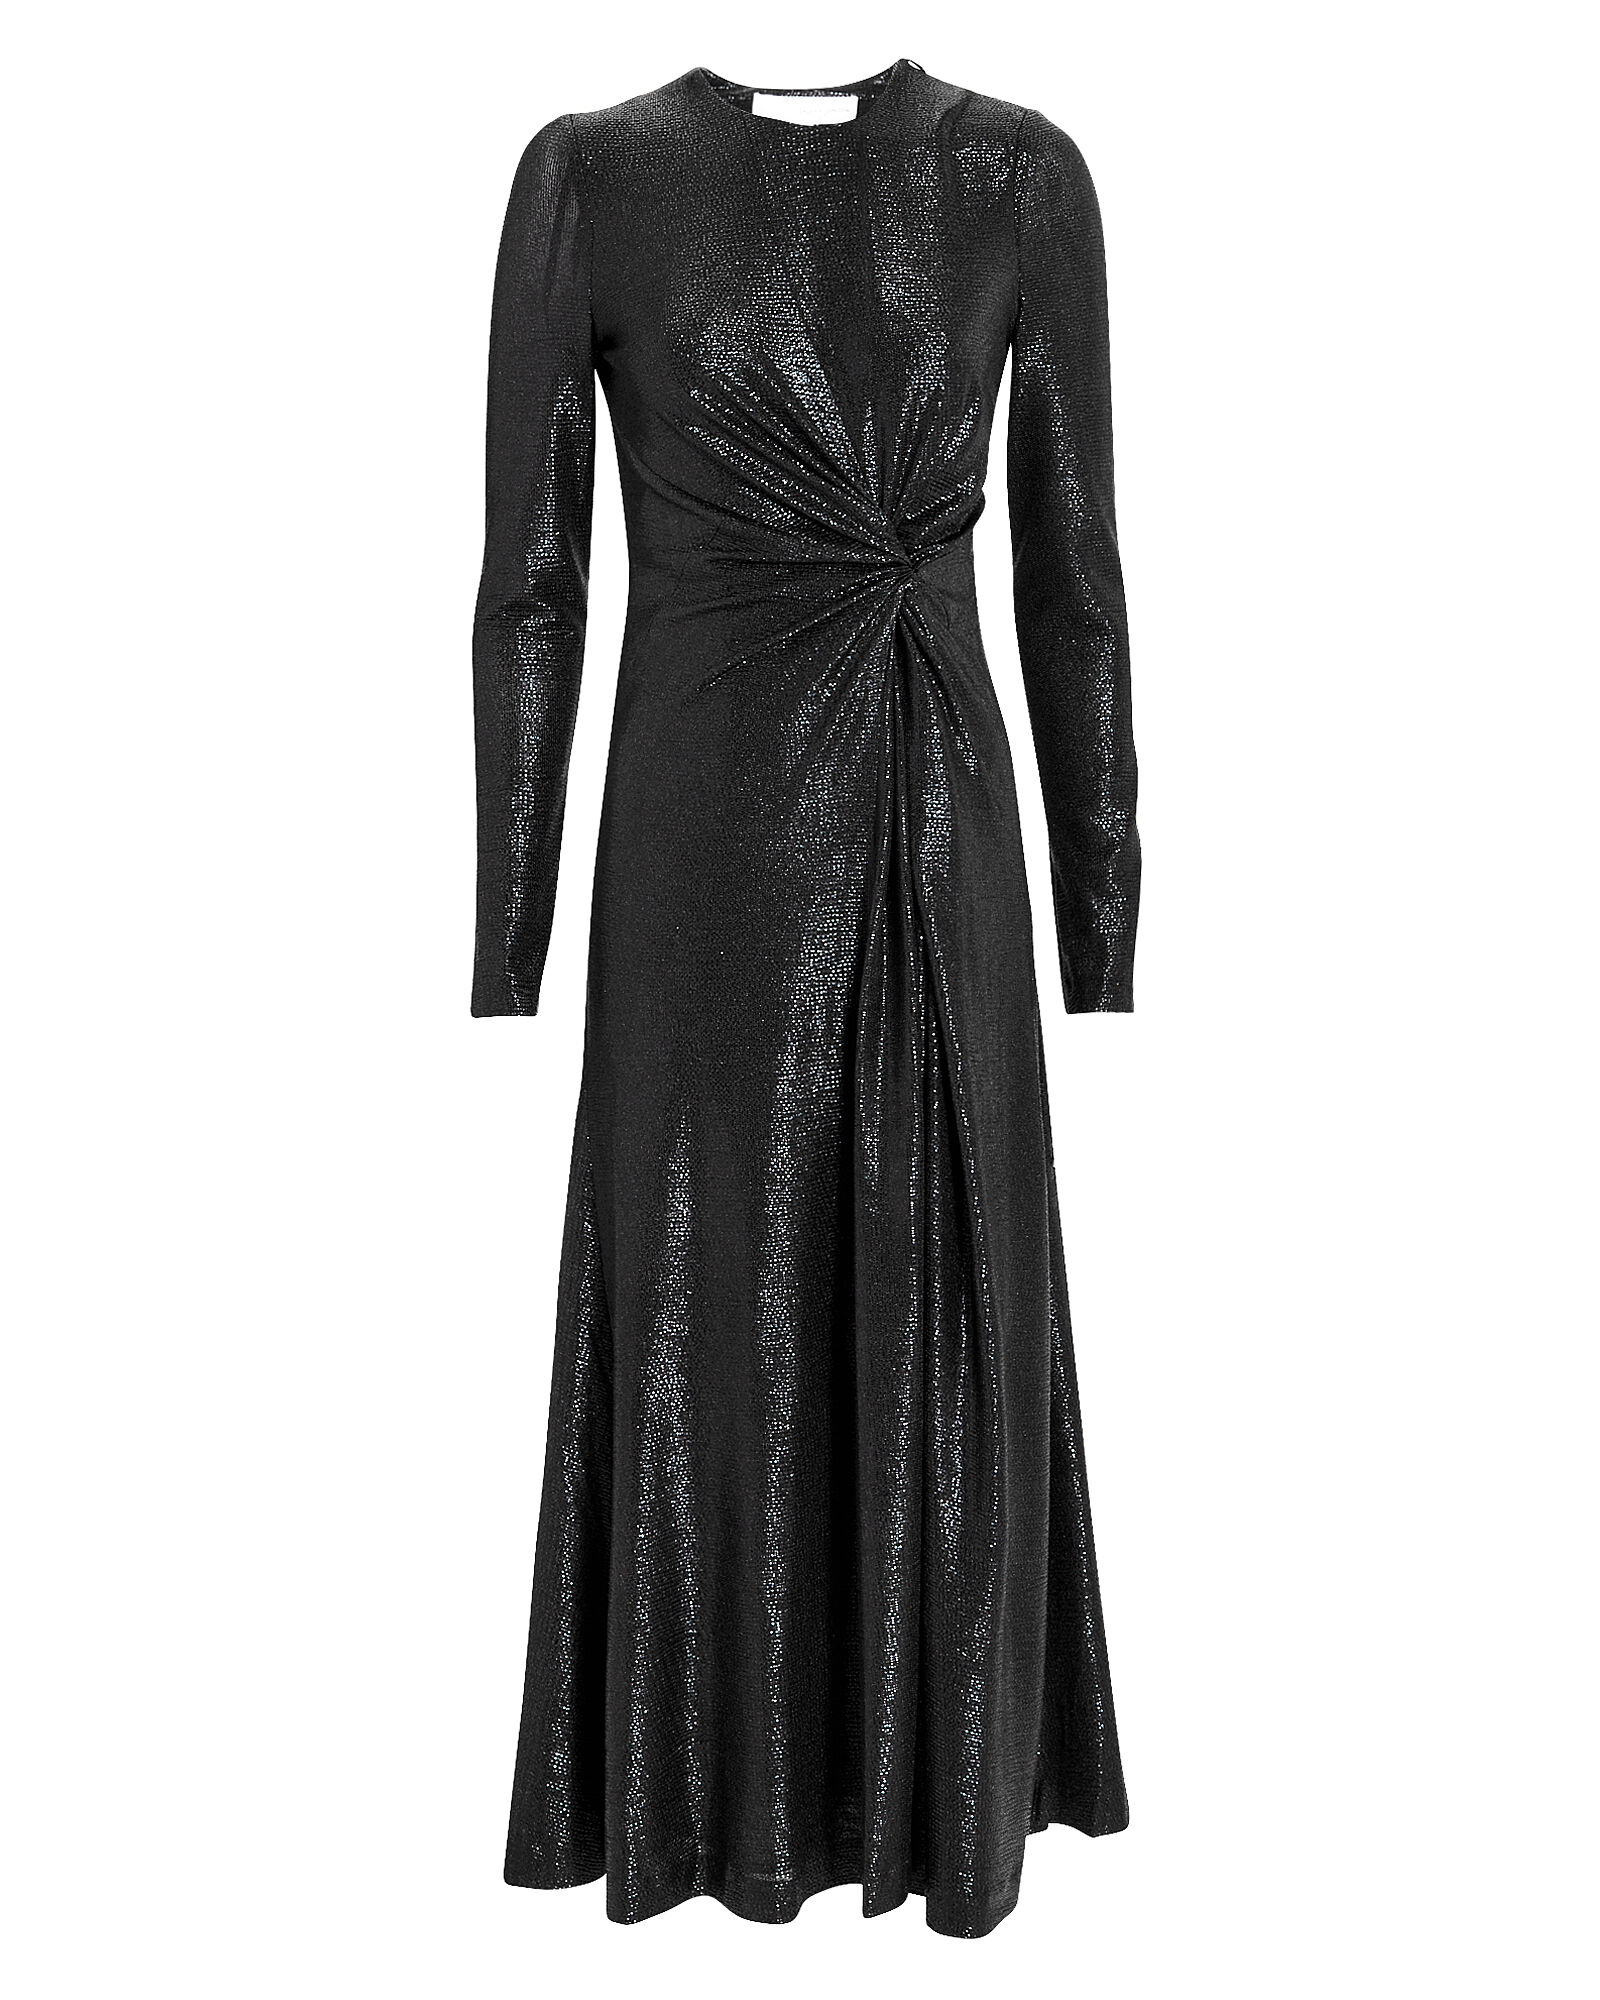 Metallic Pinwheel Dress, BLACK, hi-res